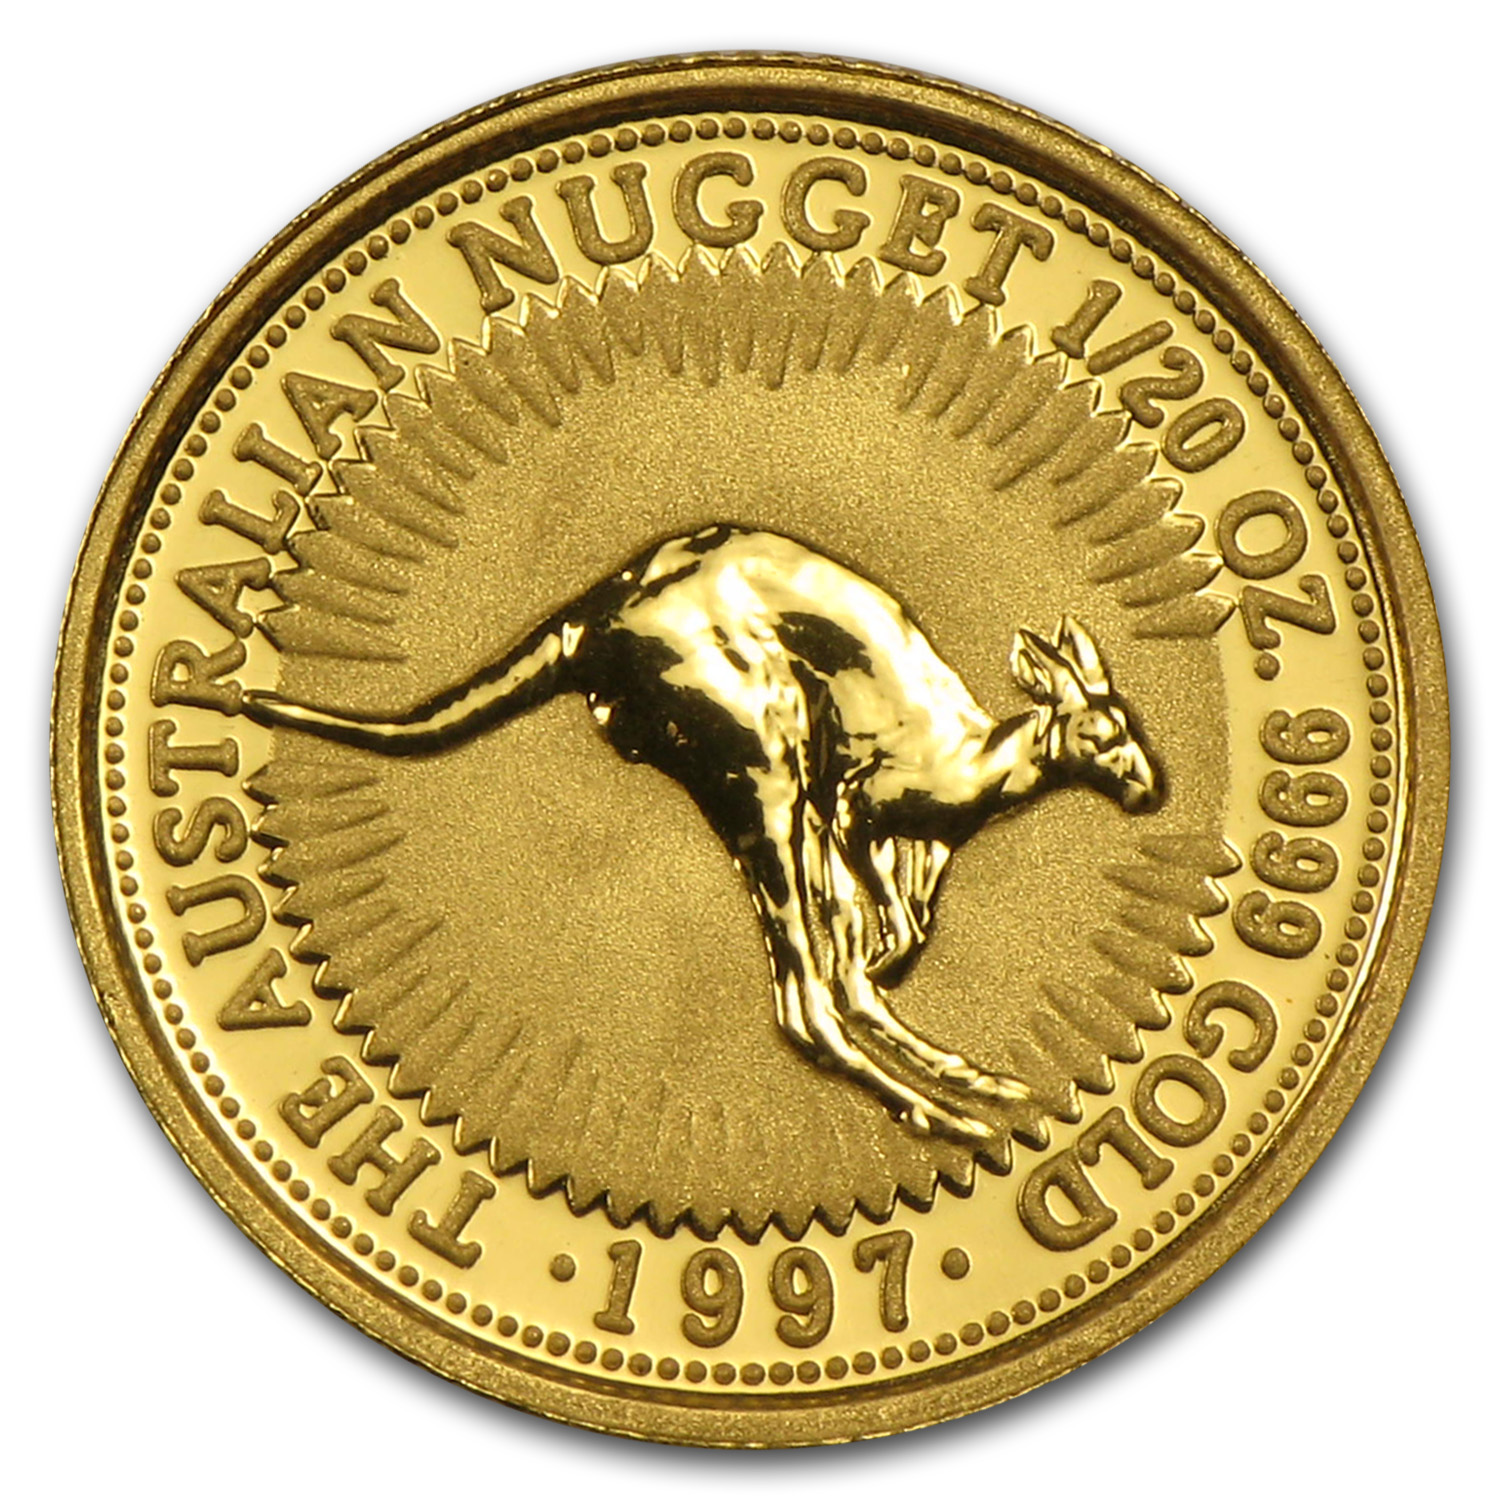 1997 Australia 1/20 oz Gold Nugget